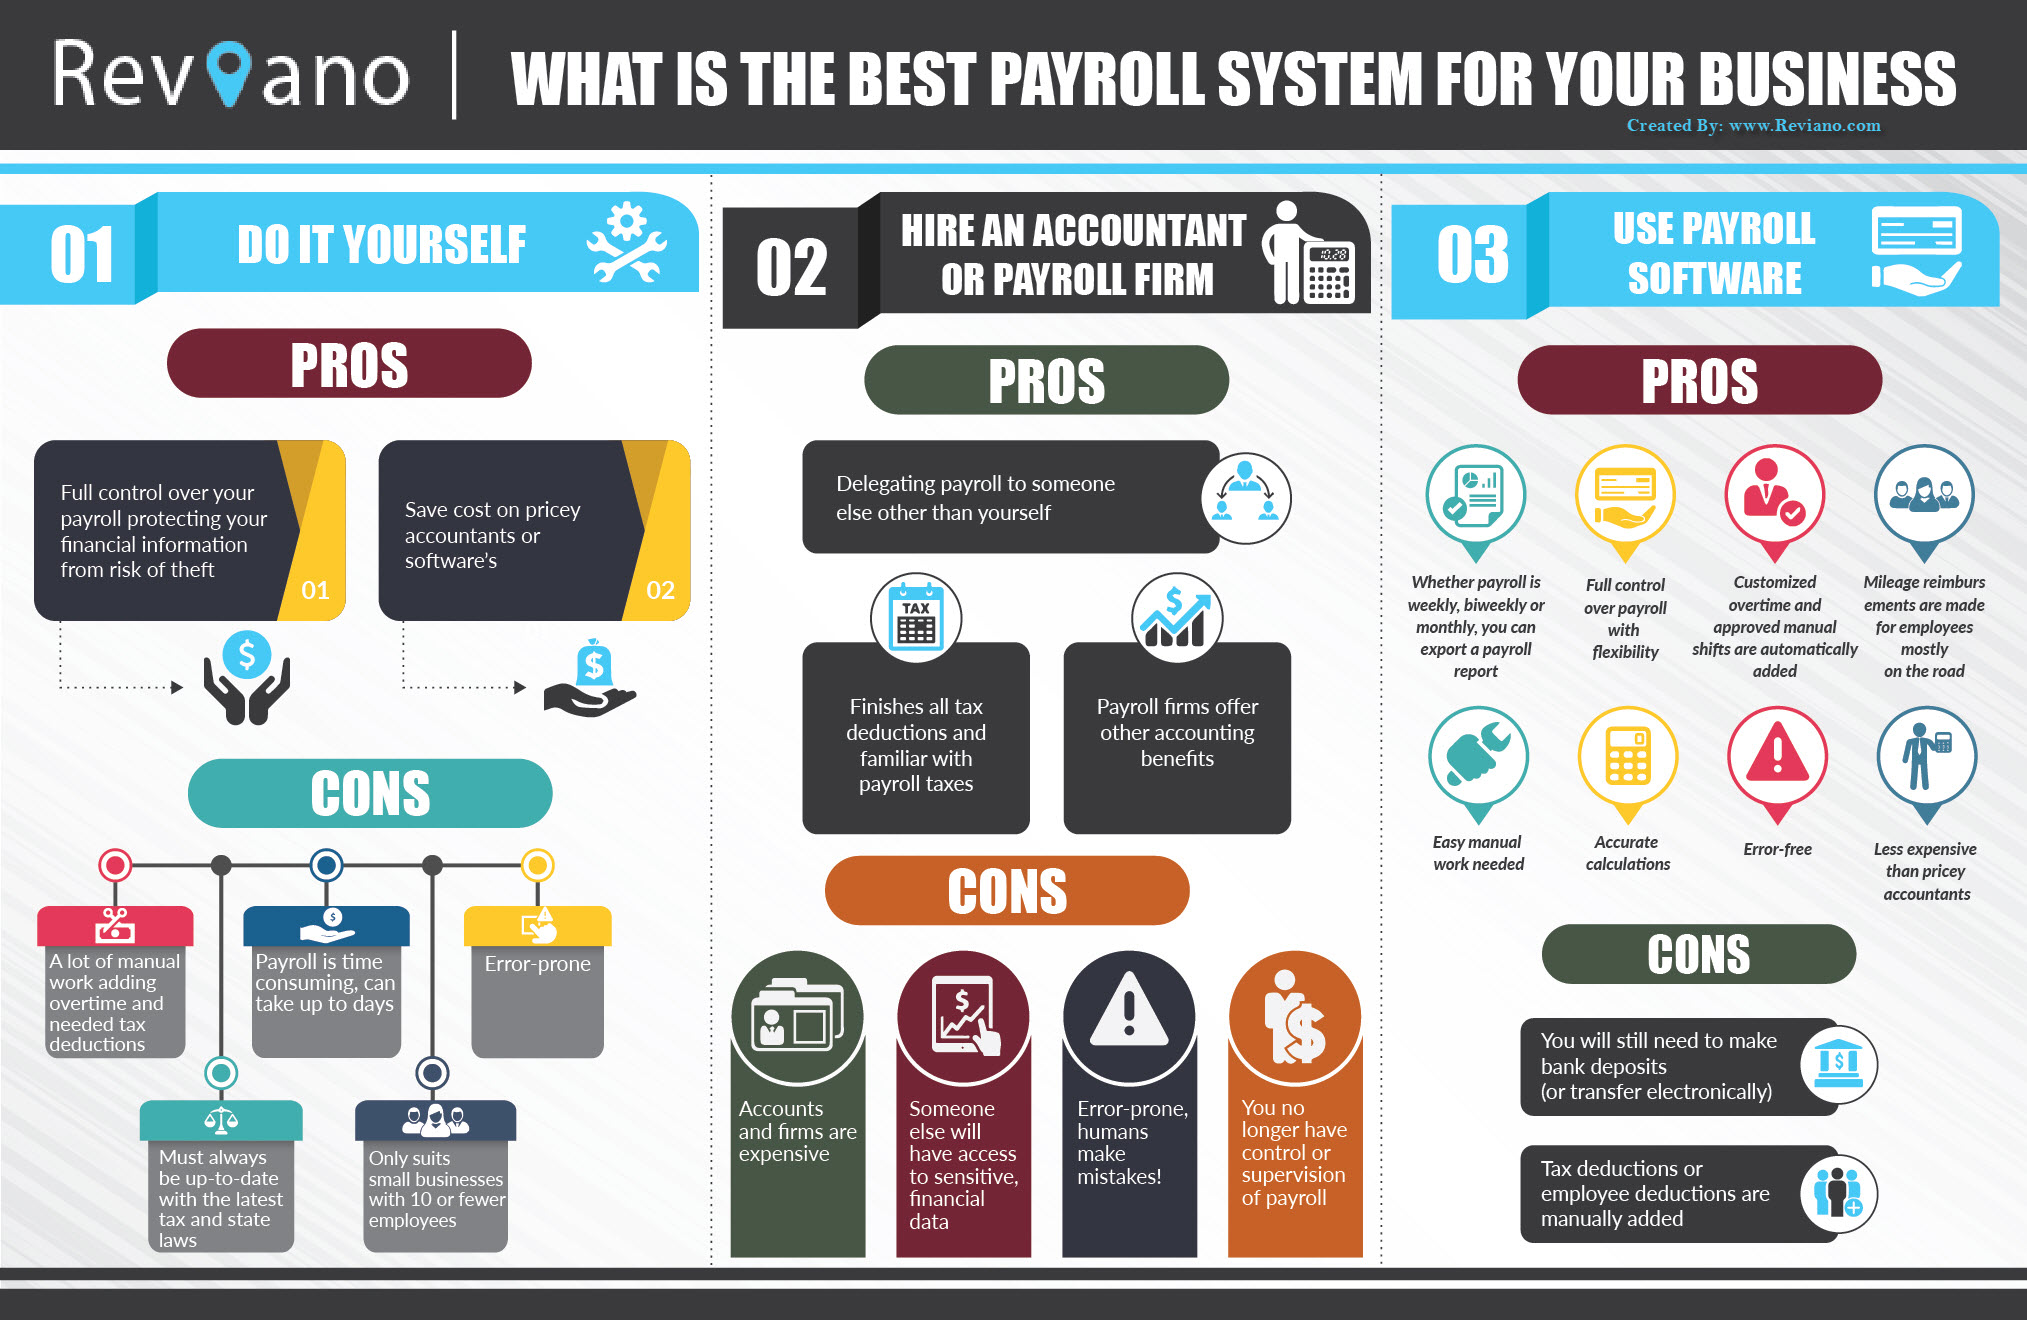 What is the Best Payroll System for Your Business